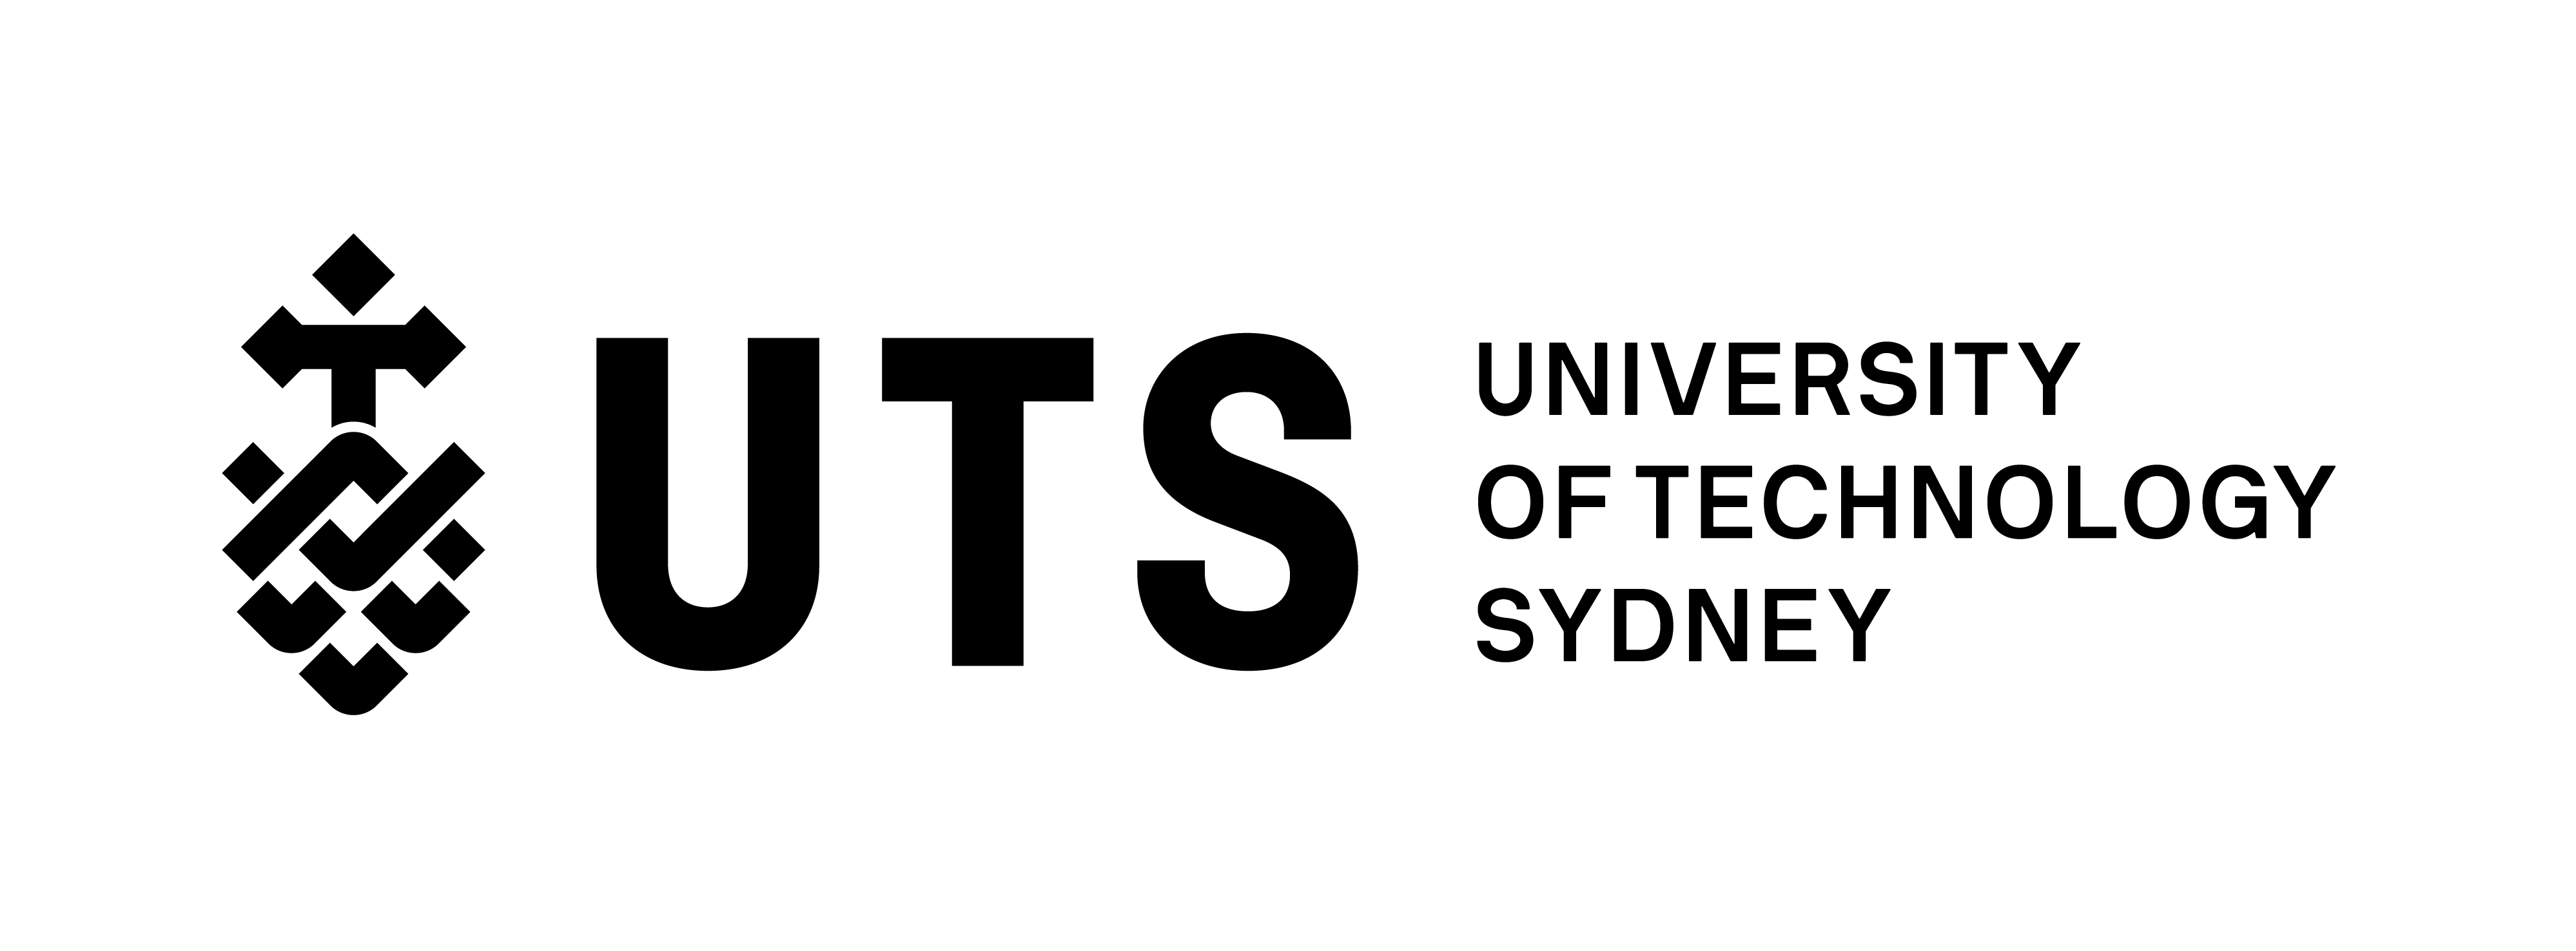 University of Technology Sydney - Bachelor of Communication - Public Communication / Bachelor of Laws